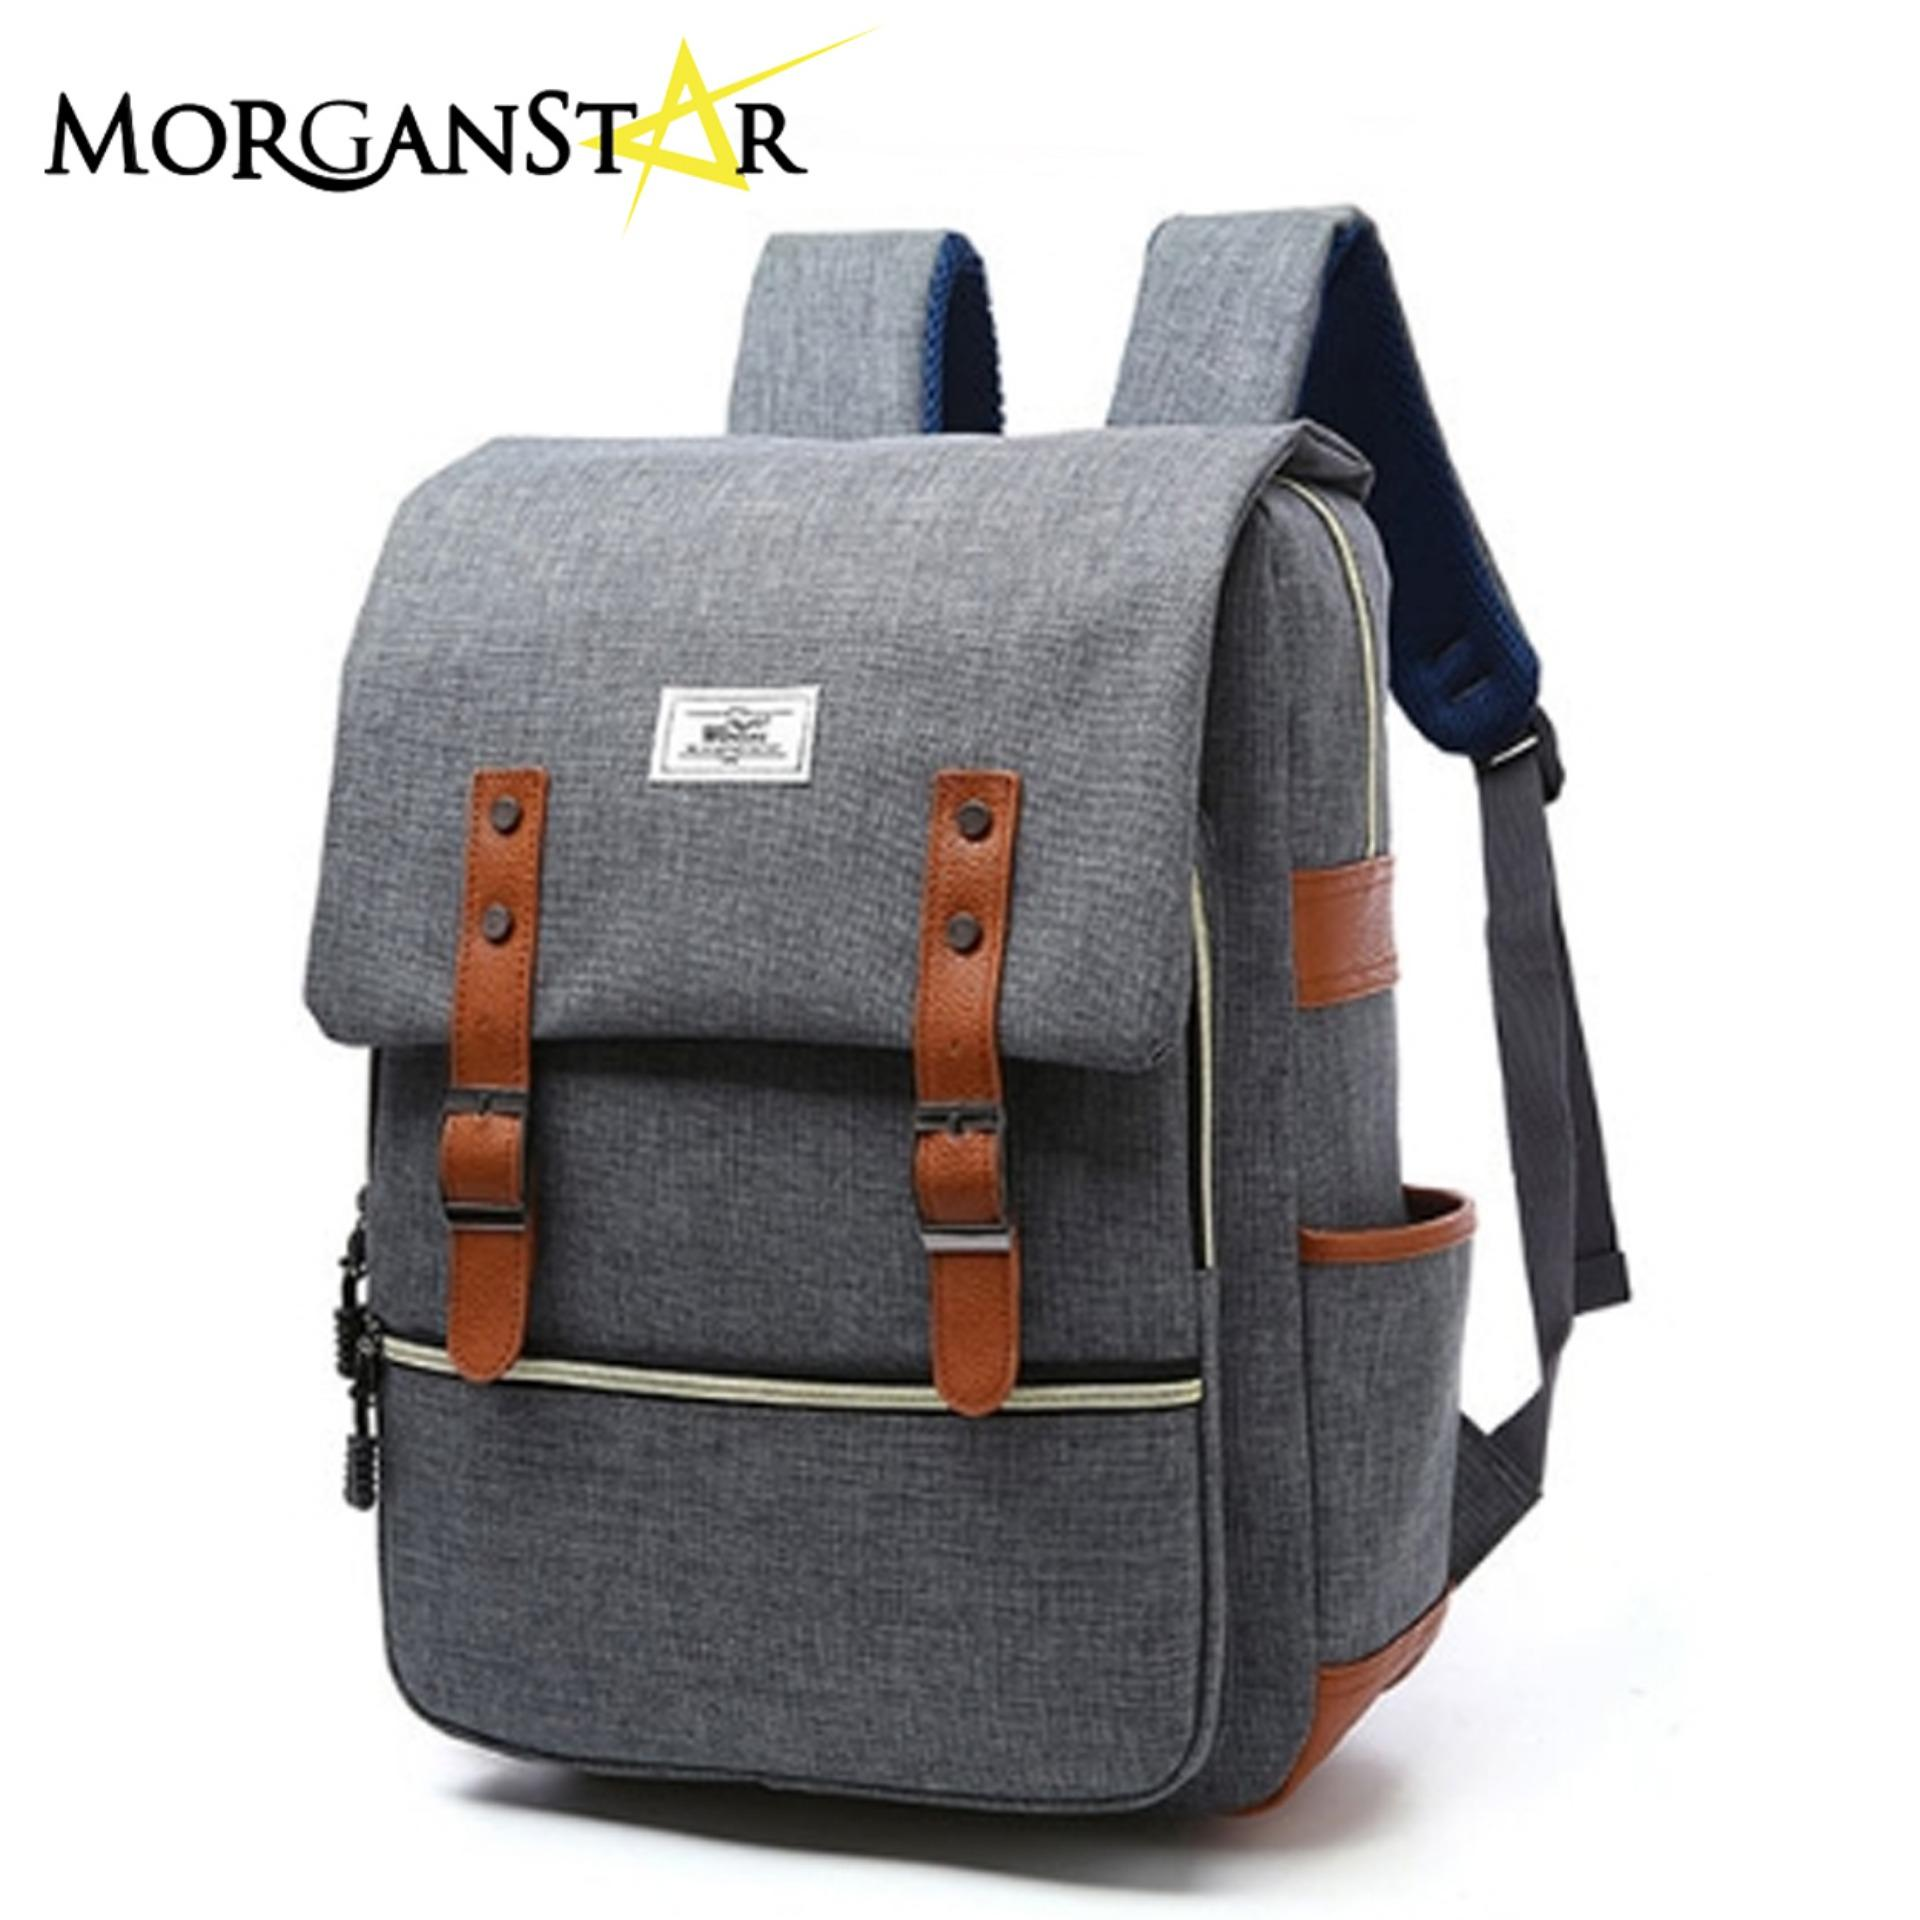 WOWANG Unisex Leisure Lightweight Travel Laptop Backpack Men Oxford Cloth Business Backpack (Gray)